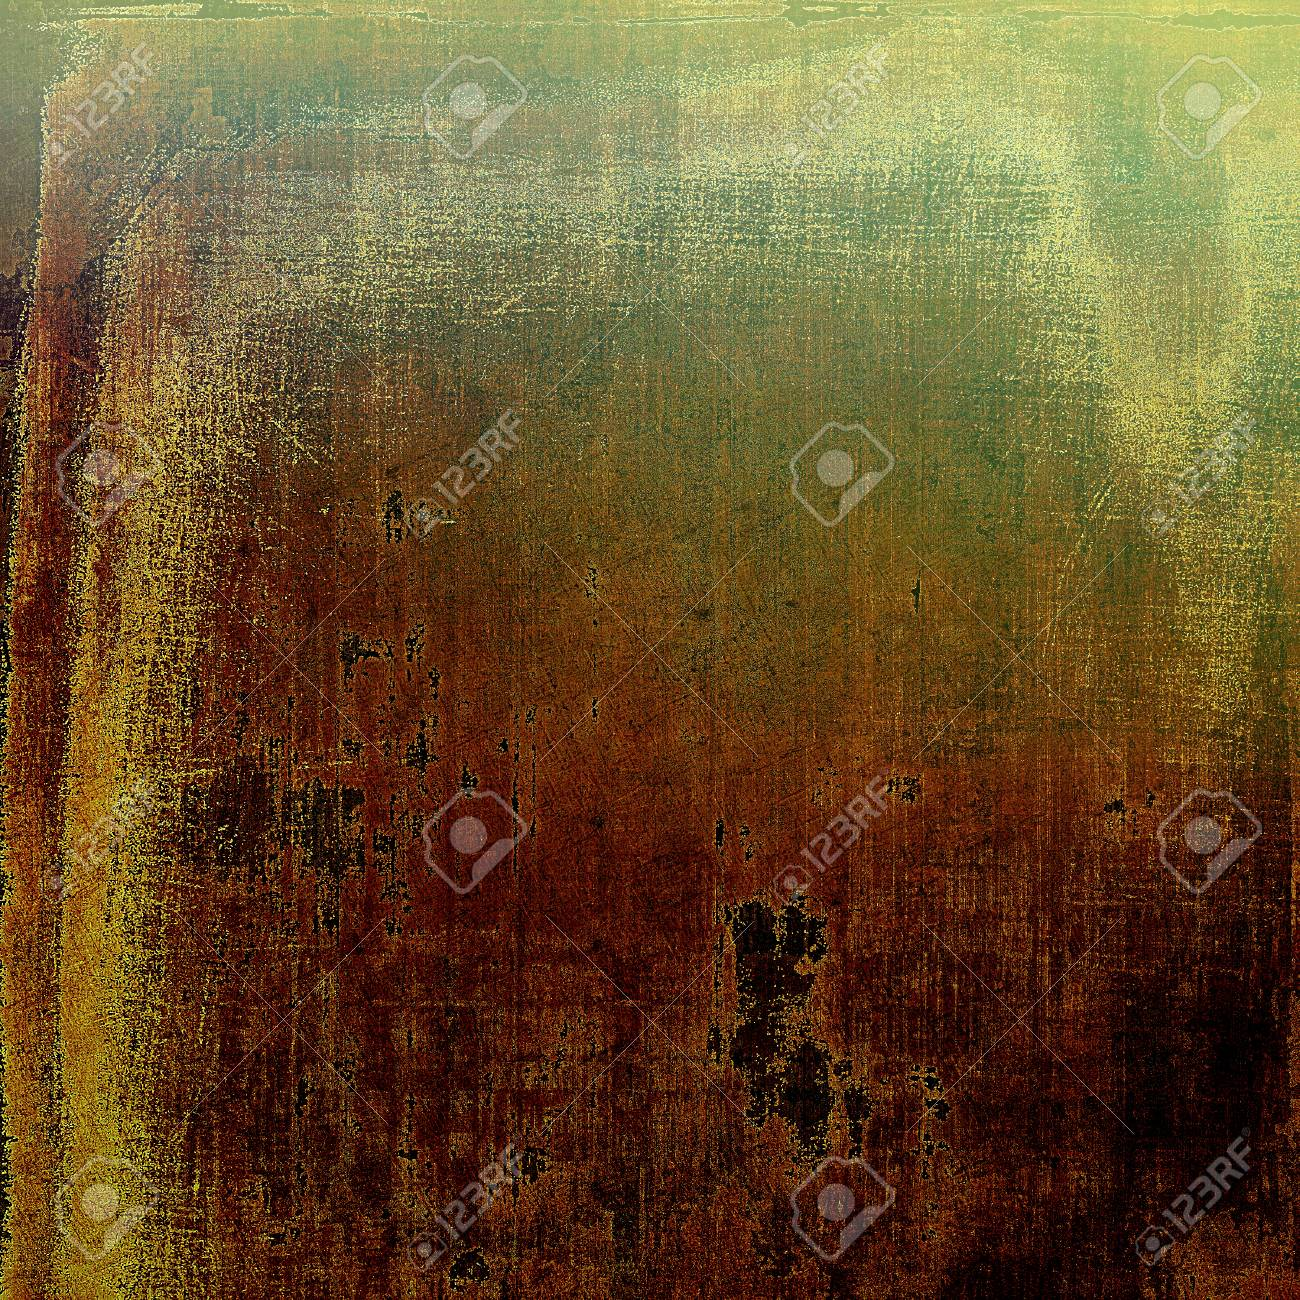 Creative Vintage Grunge Texture Or Ragged Old Background For Art Projects With Different Color Patterns